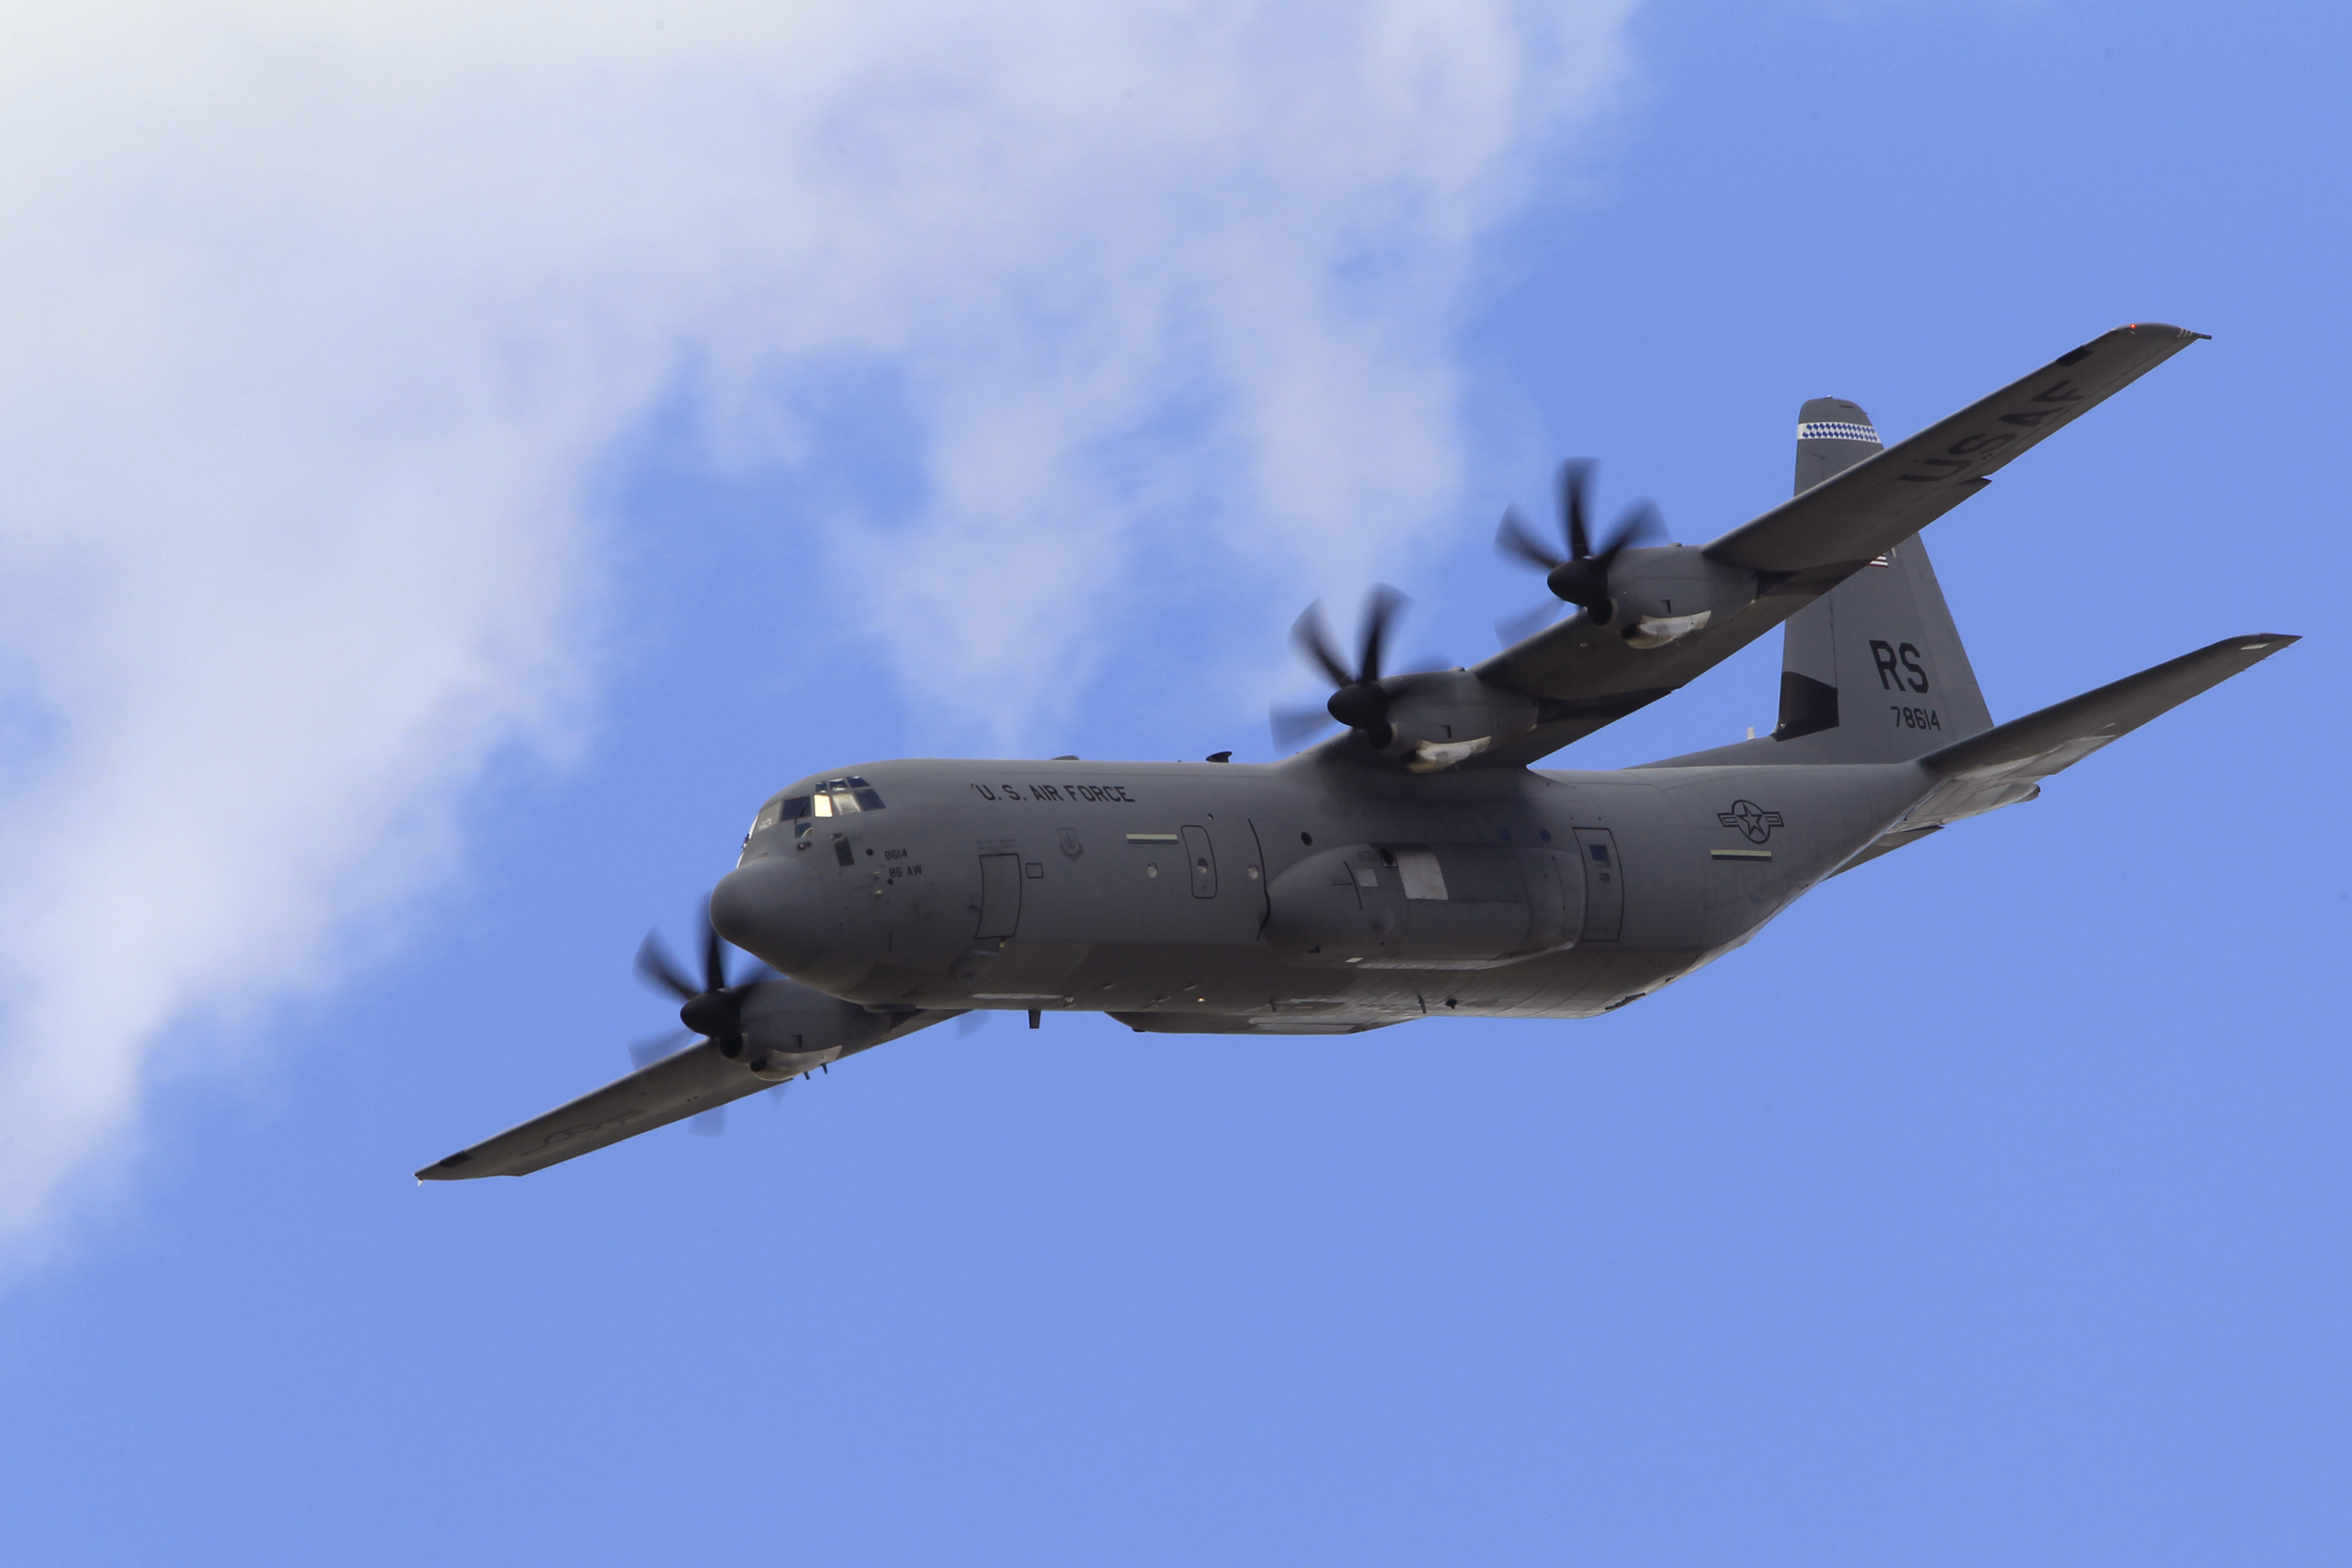 Elicottero C130 : Lockheed martin to build super hercules aircraft for us